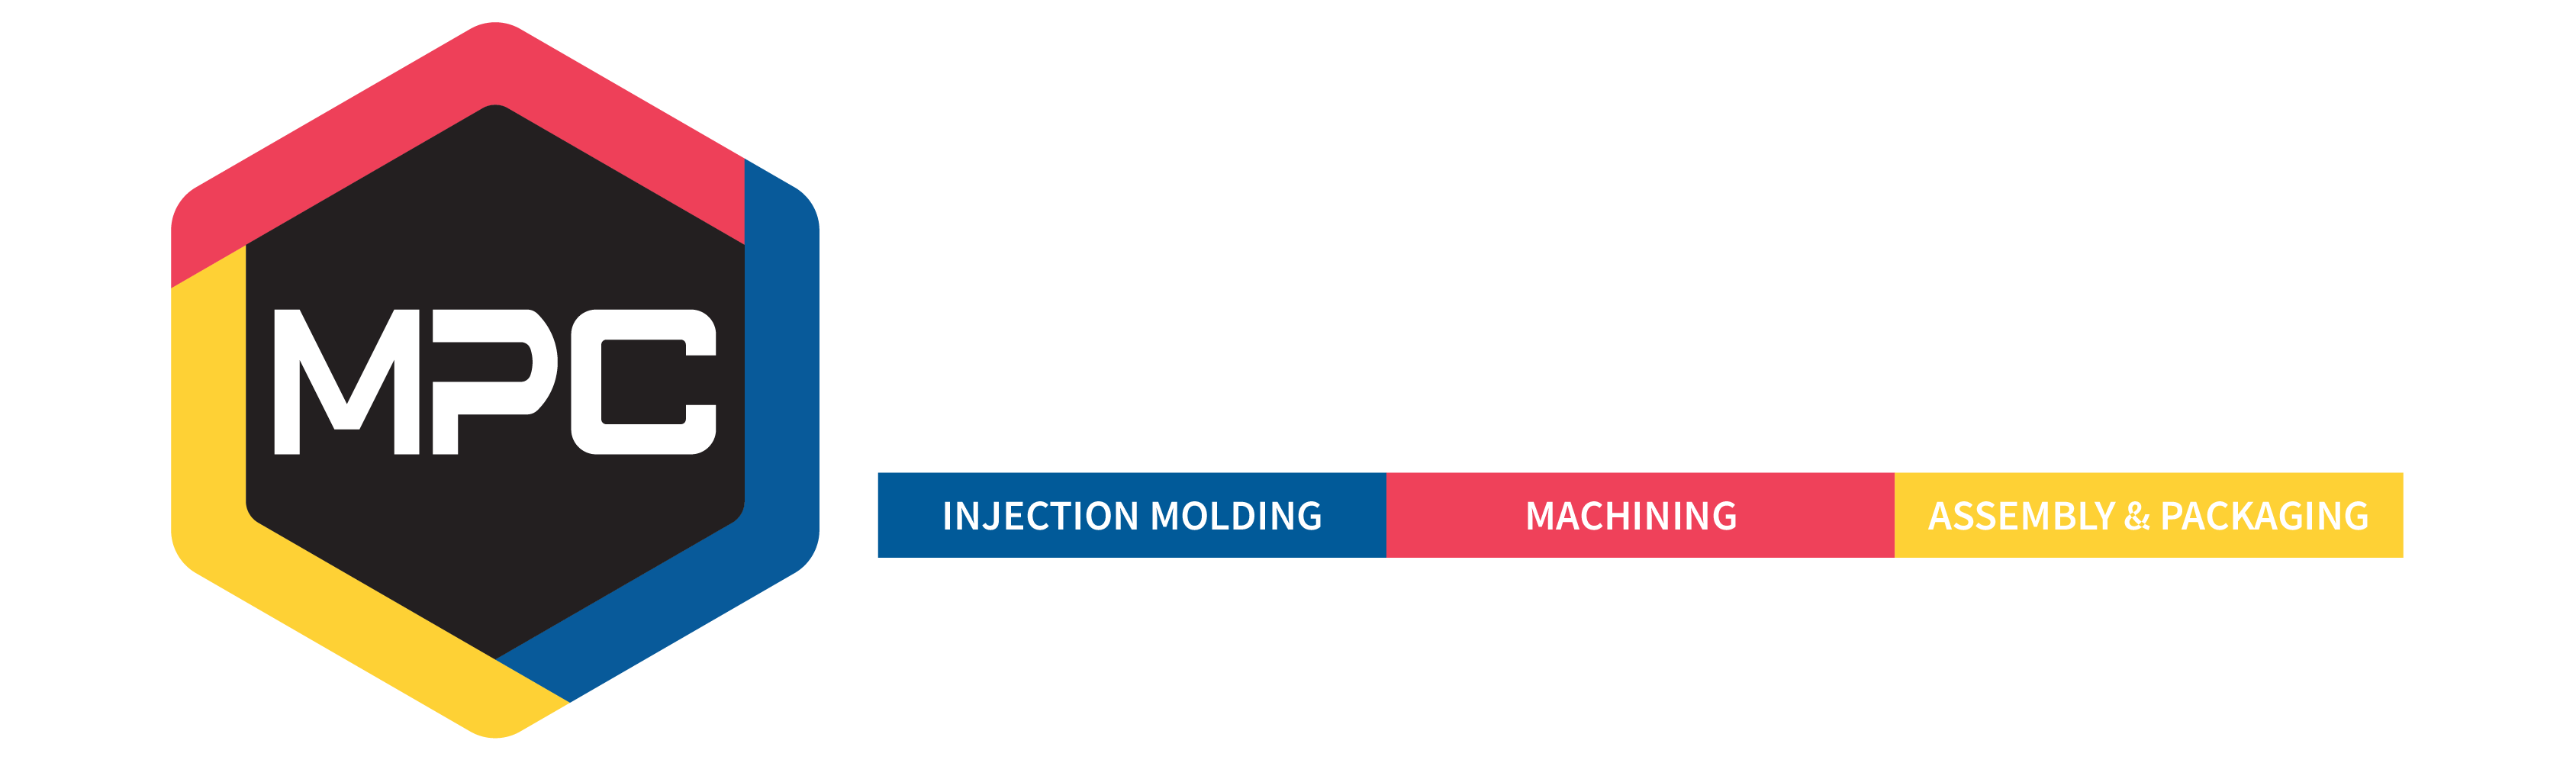 Molded Products Incorporated